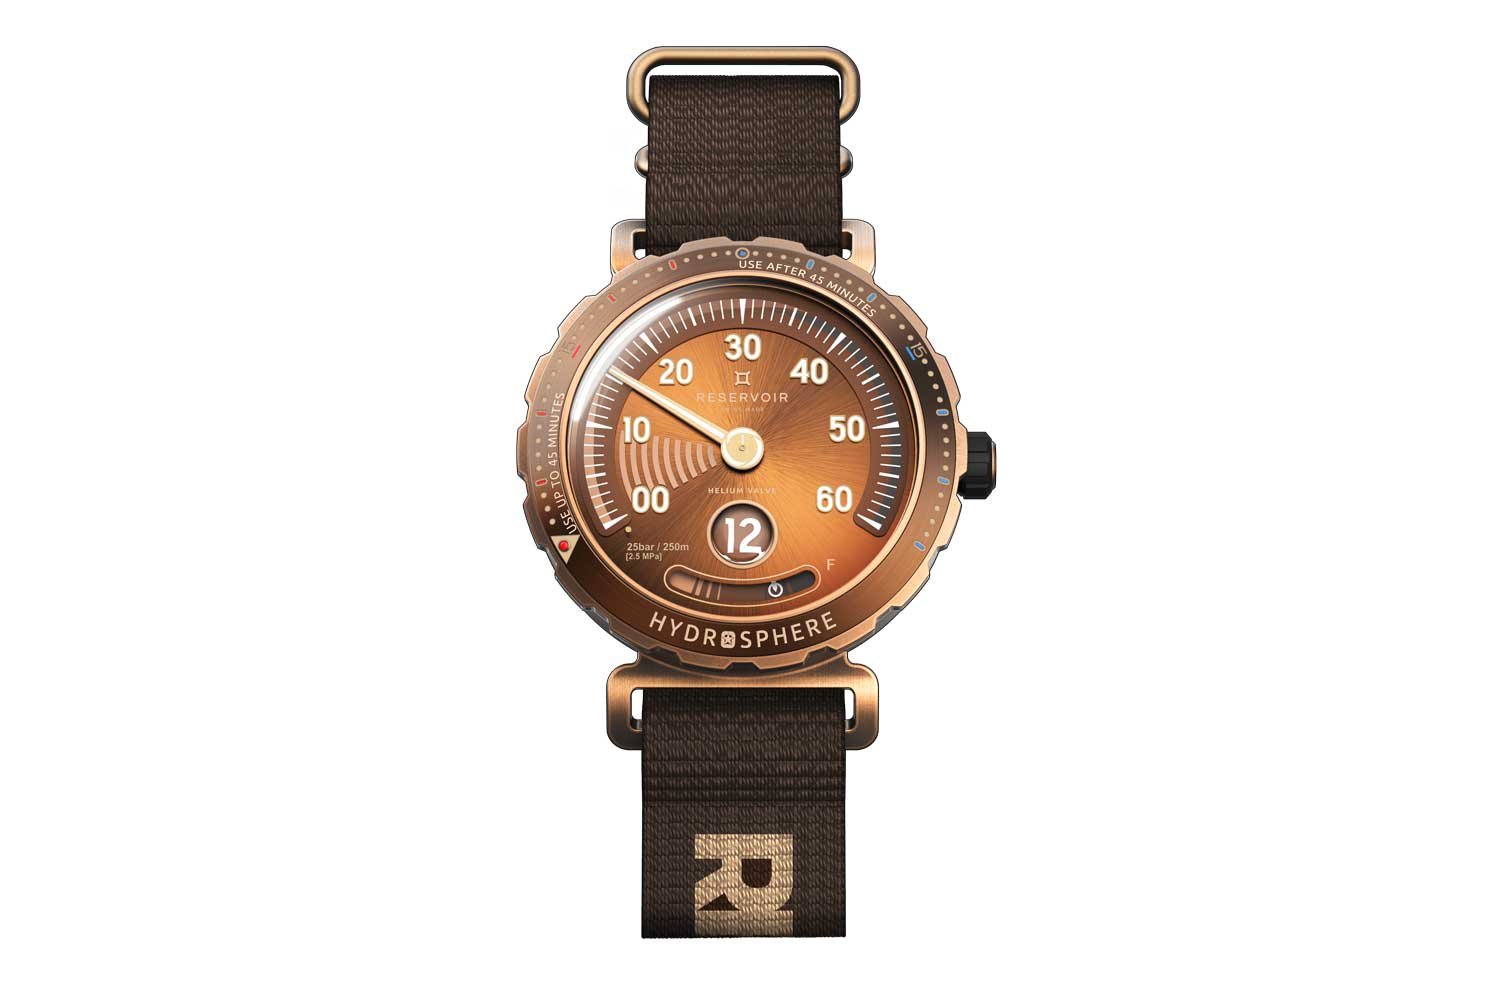 With the watch, we include a rubber strap and a NATO strap with bronze hardware and keepers. The NATO strap is an all-new strap design for us and is exclusive to the Revolution model; the NATO strap will, however, only be sent to you at a later date; a third ZULU strap with bronze keepers will also be included in the box, as our way of saying thanks